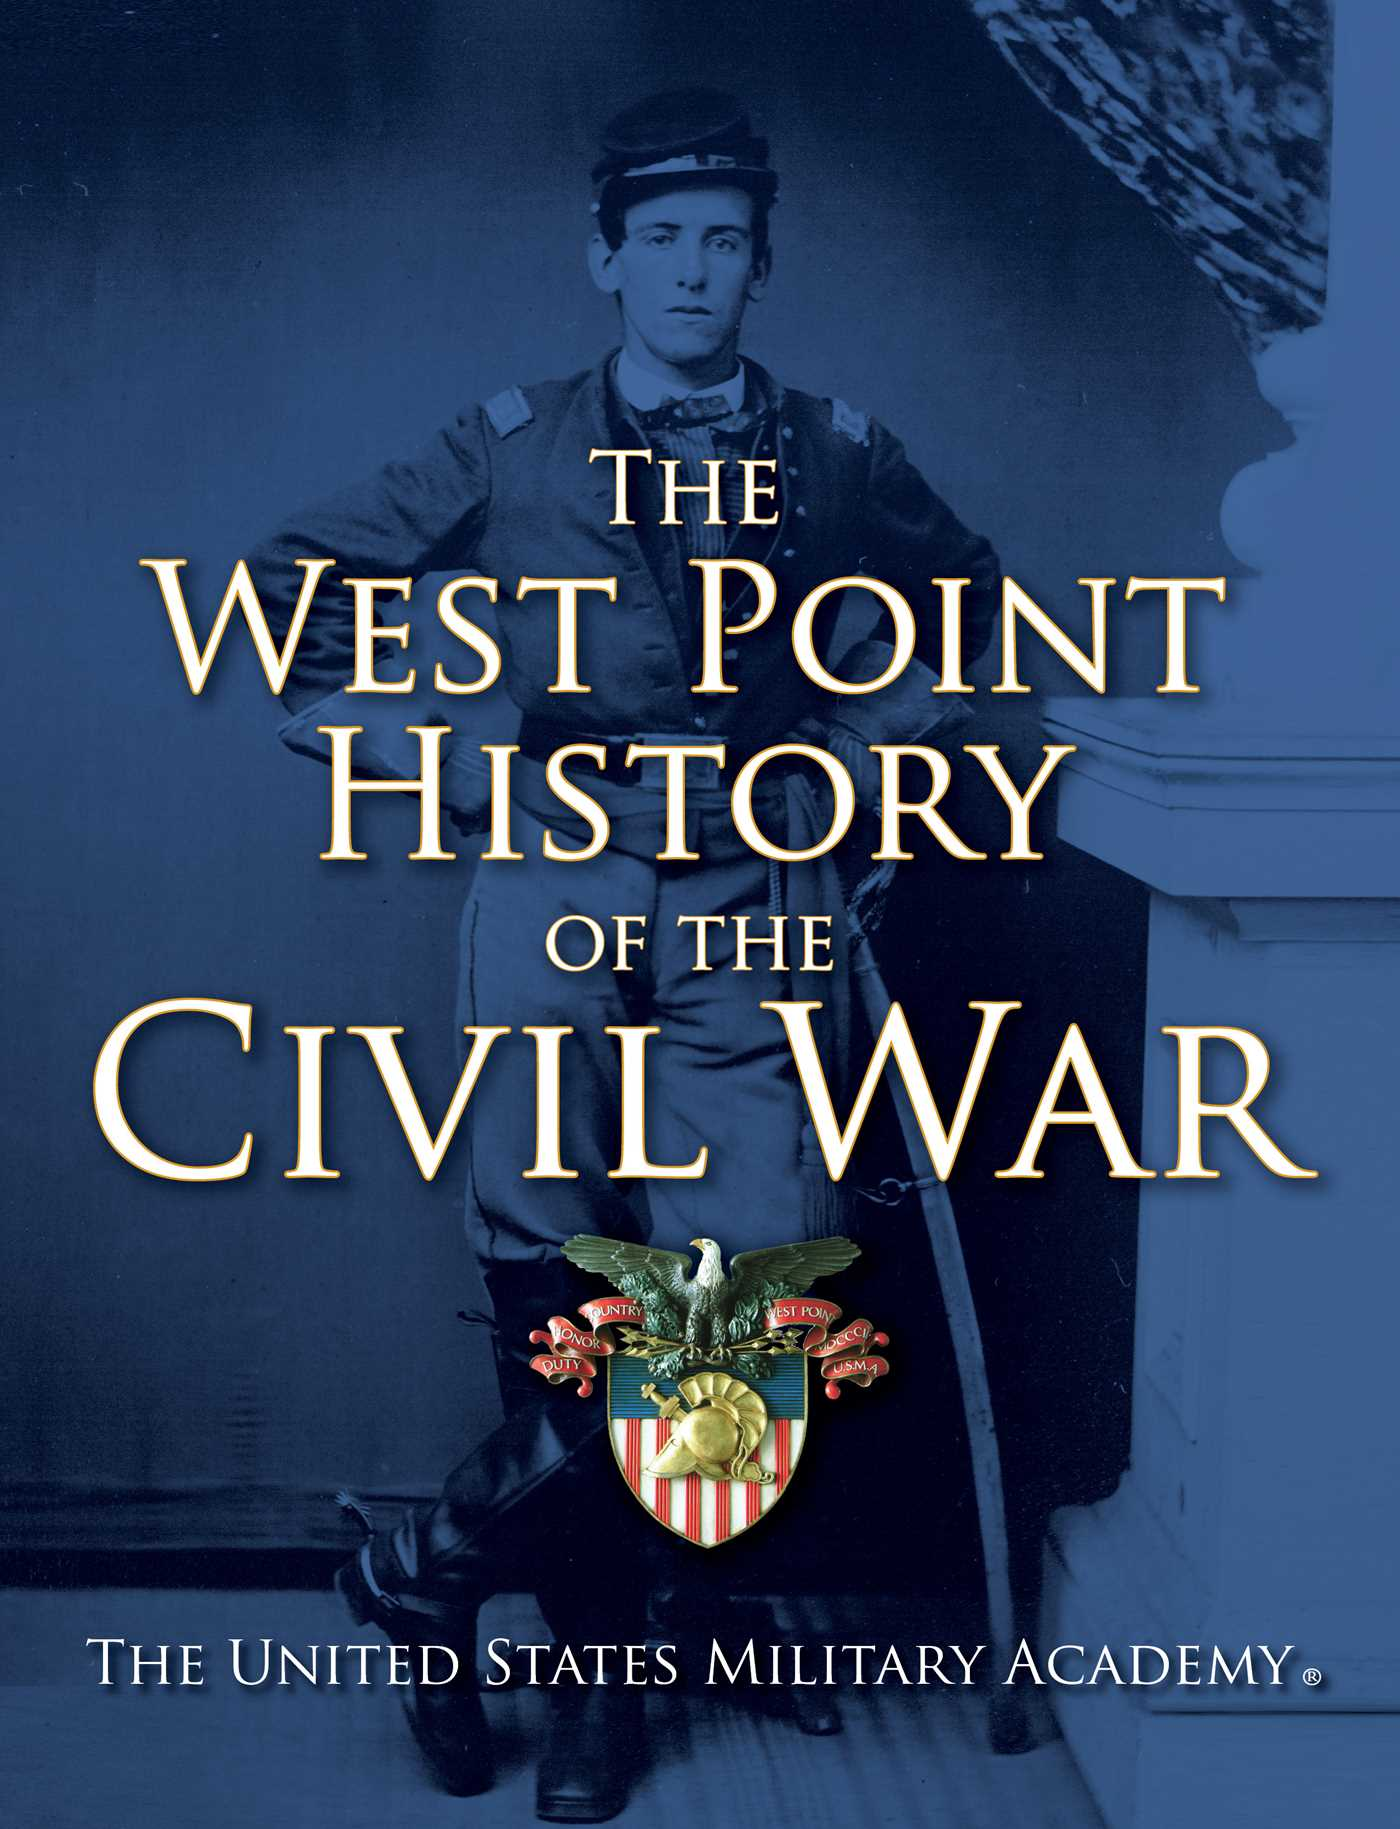 West-point-history-of-the-civil-war-9781476782621_hr